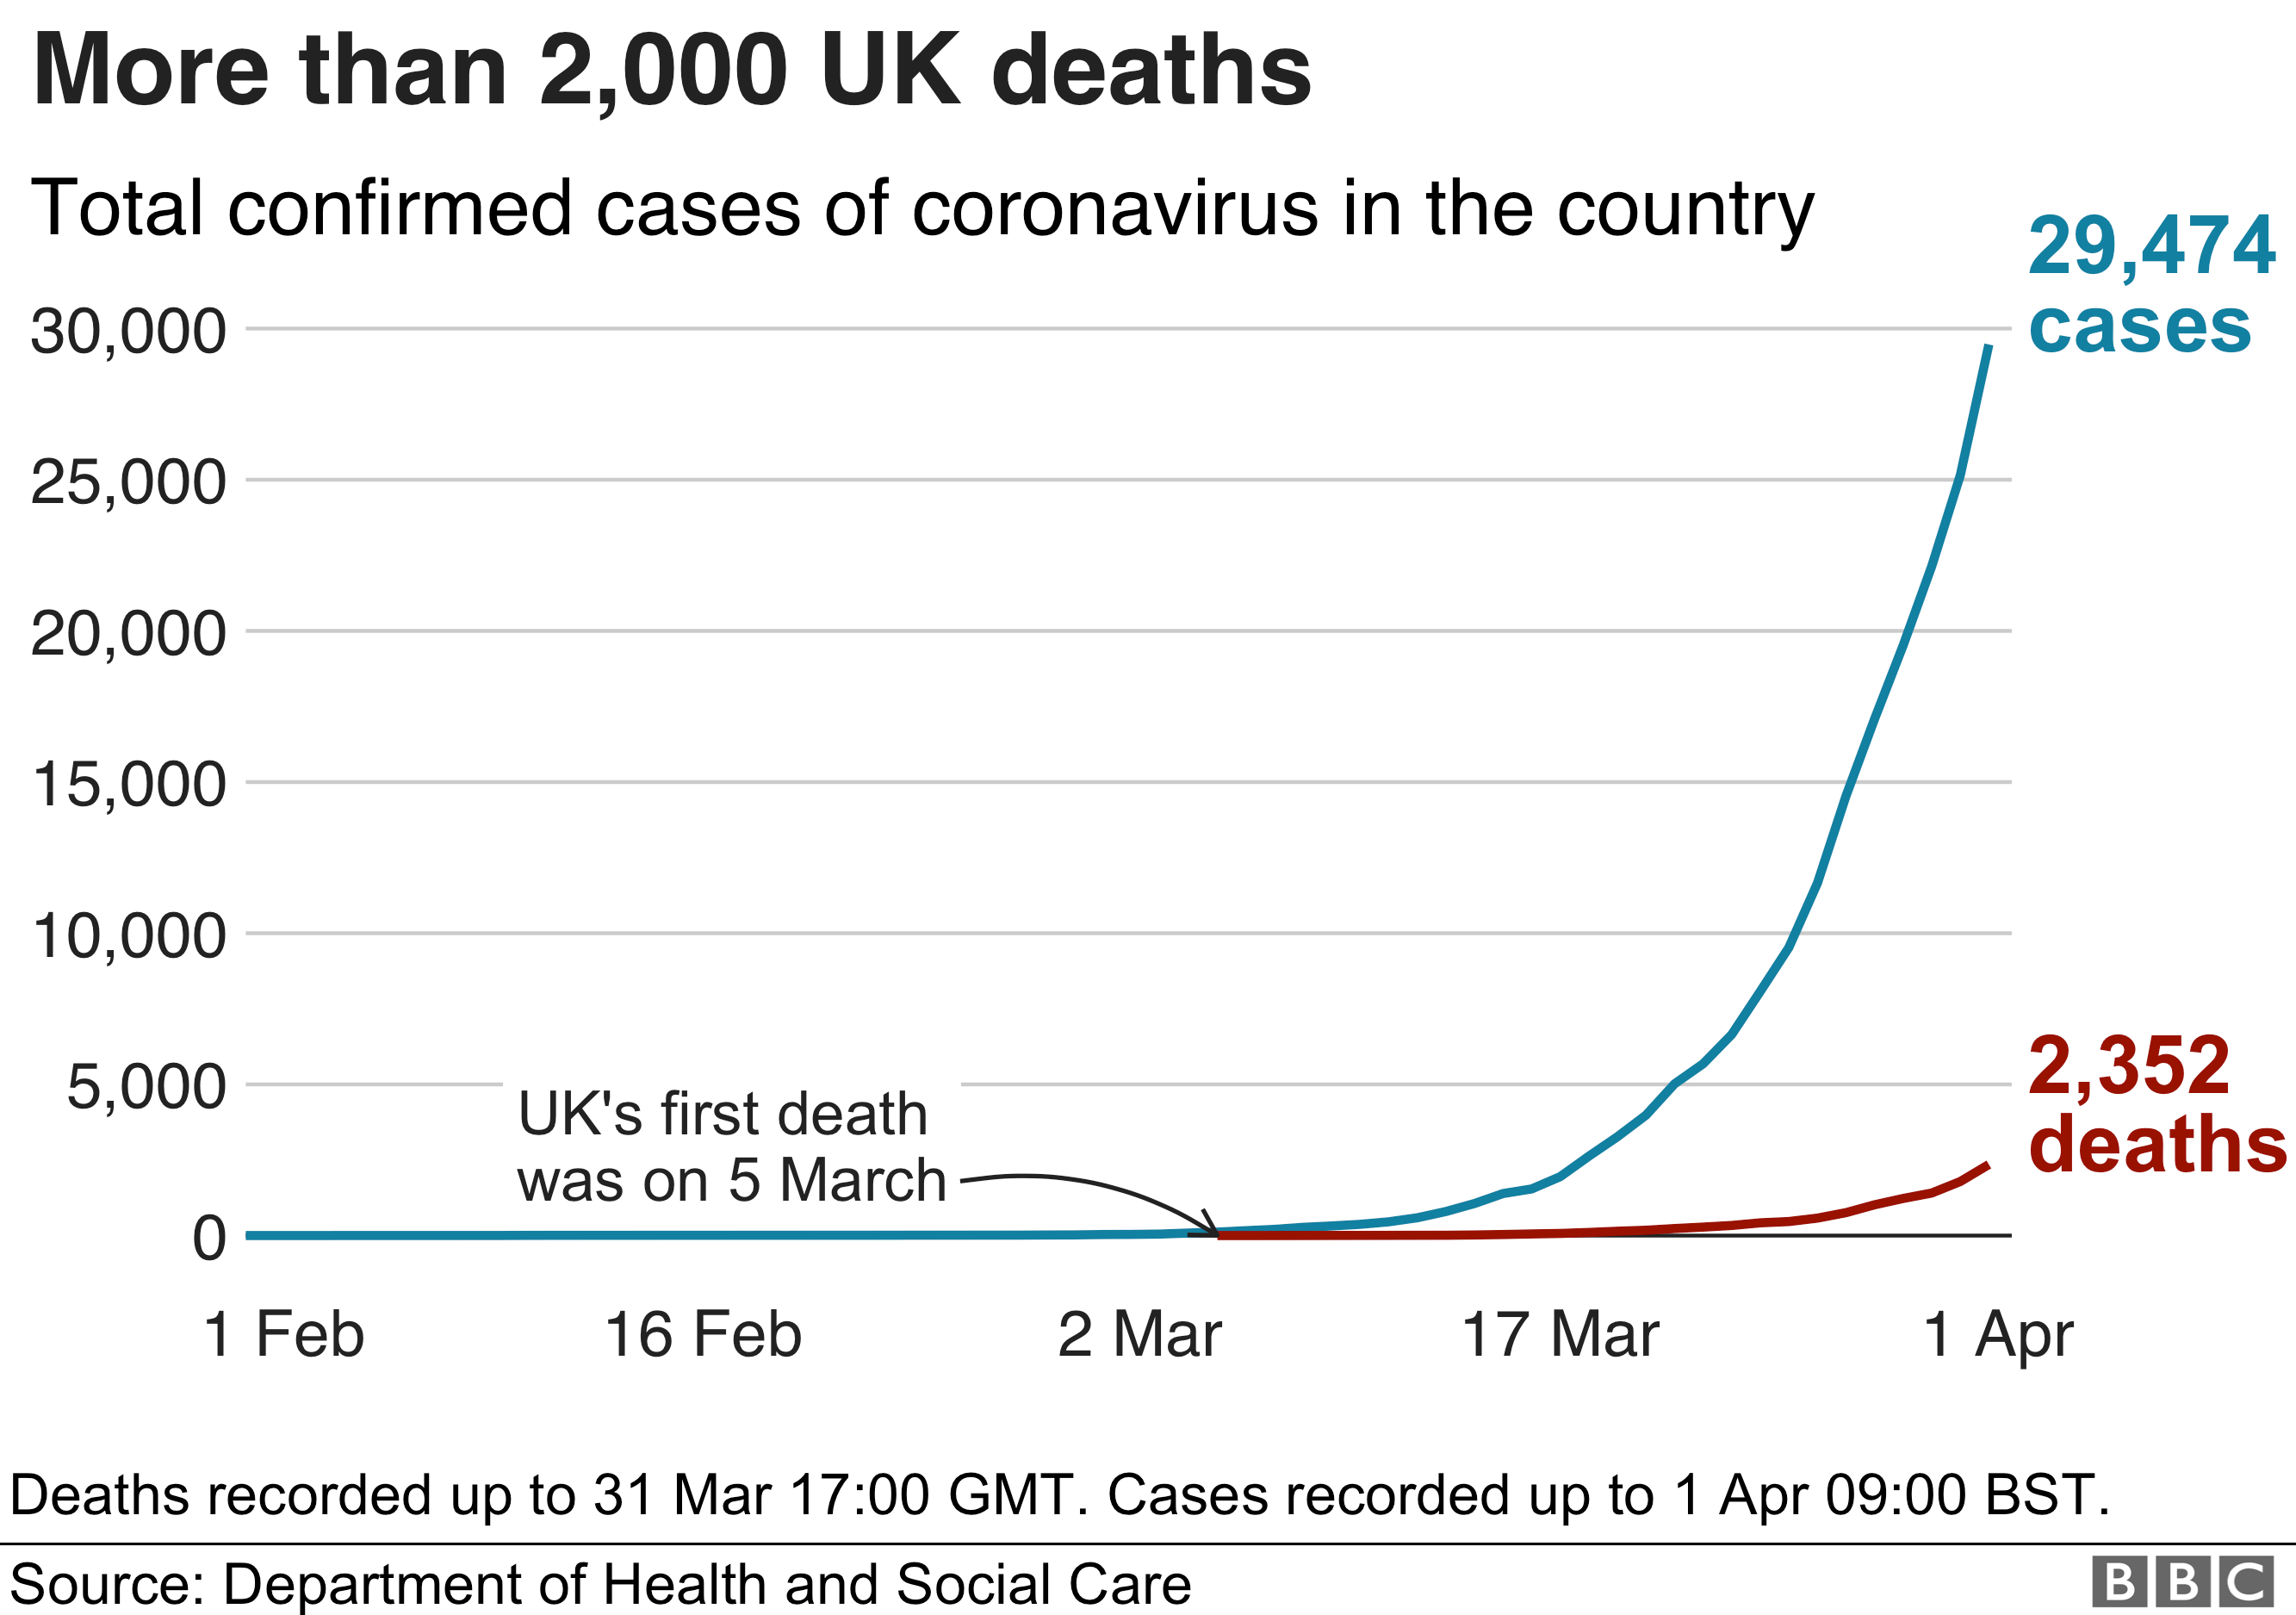 Chart showing the total number of deaths in the UK has passed 2,000